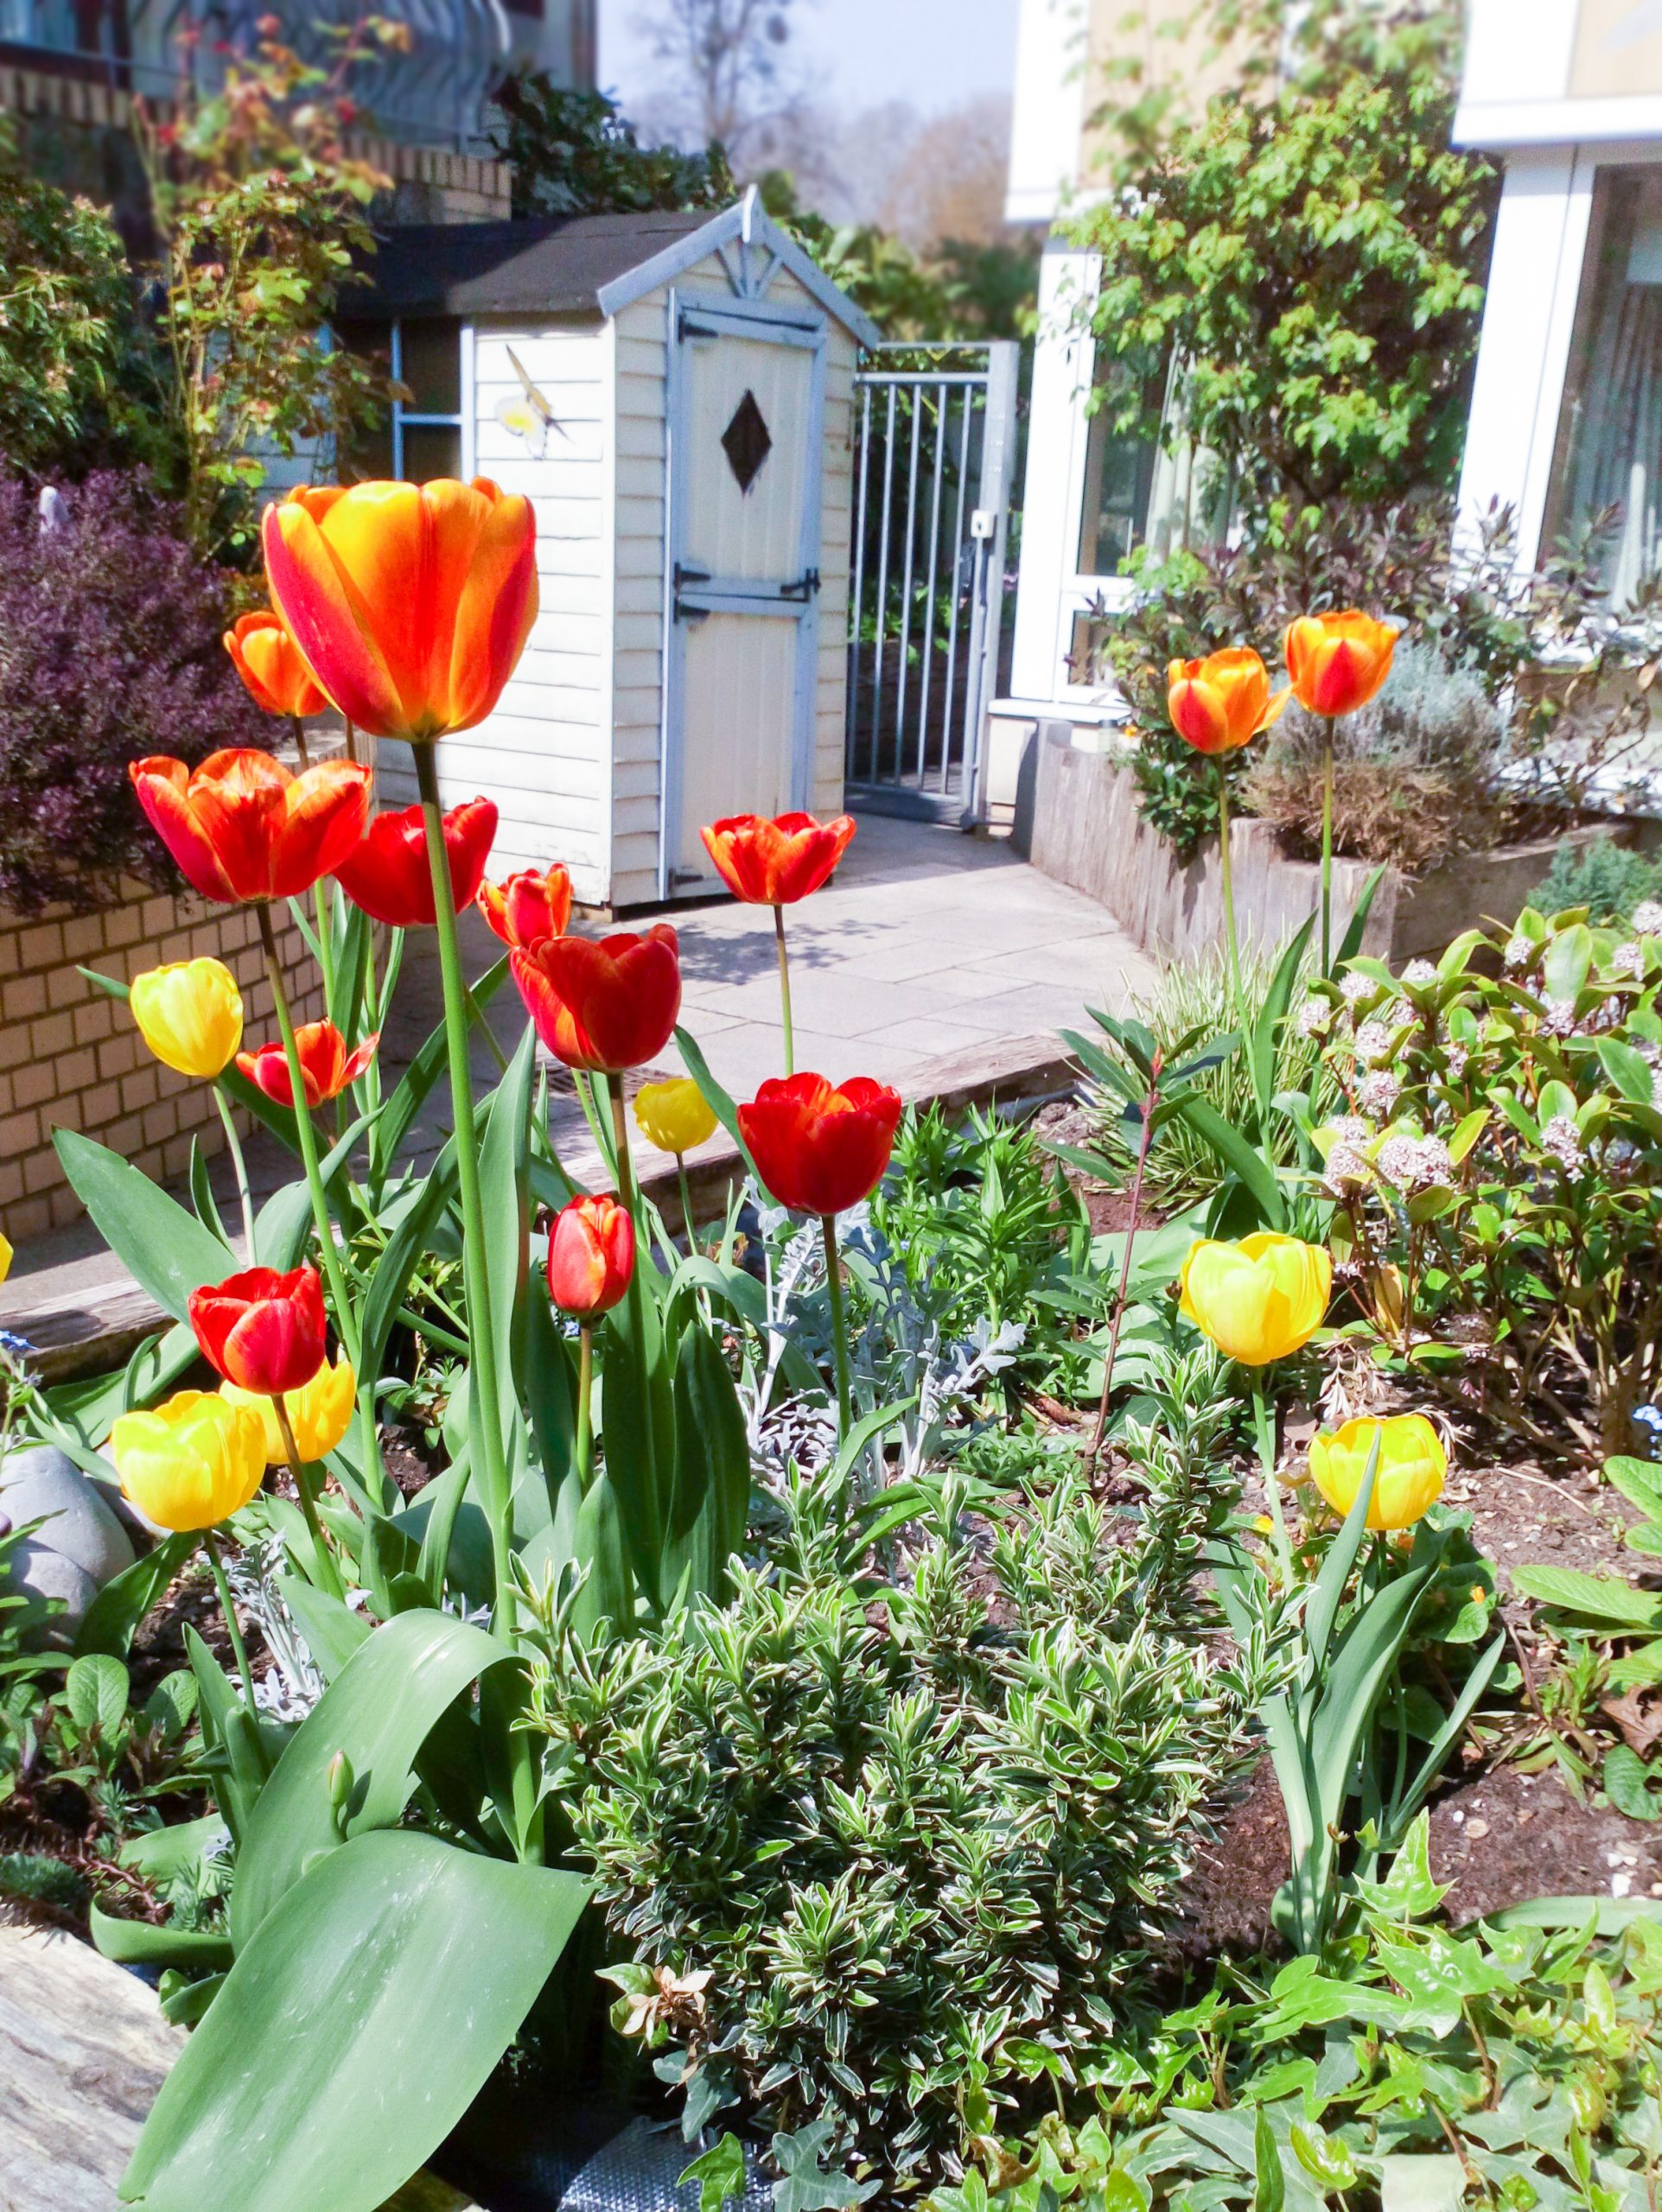 Tulip bulbs that have bloomed at Bradbury Court care home